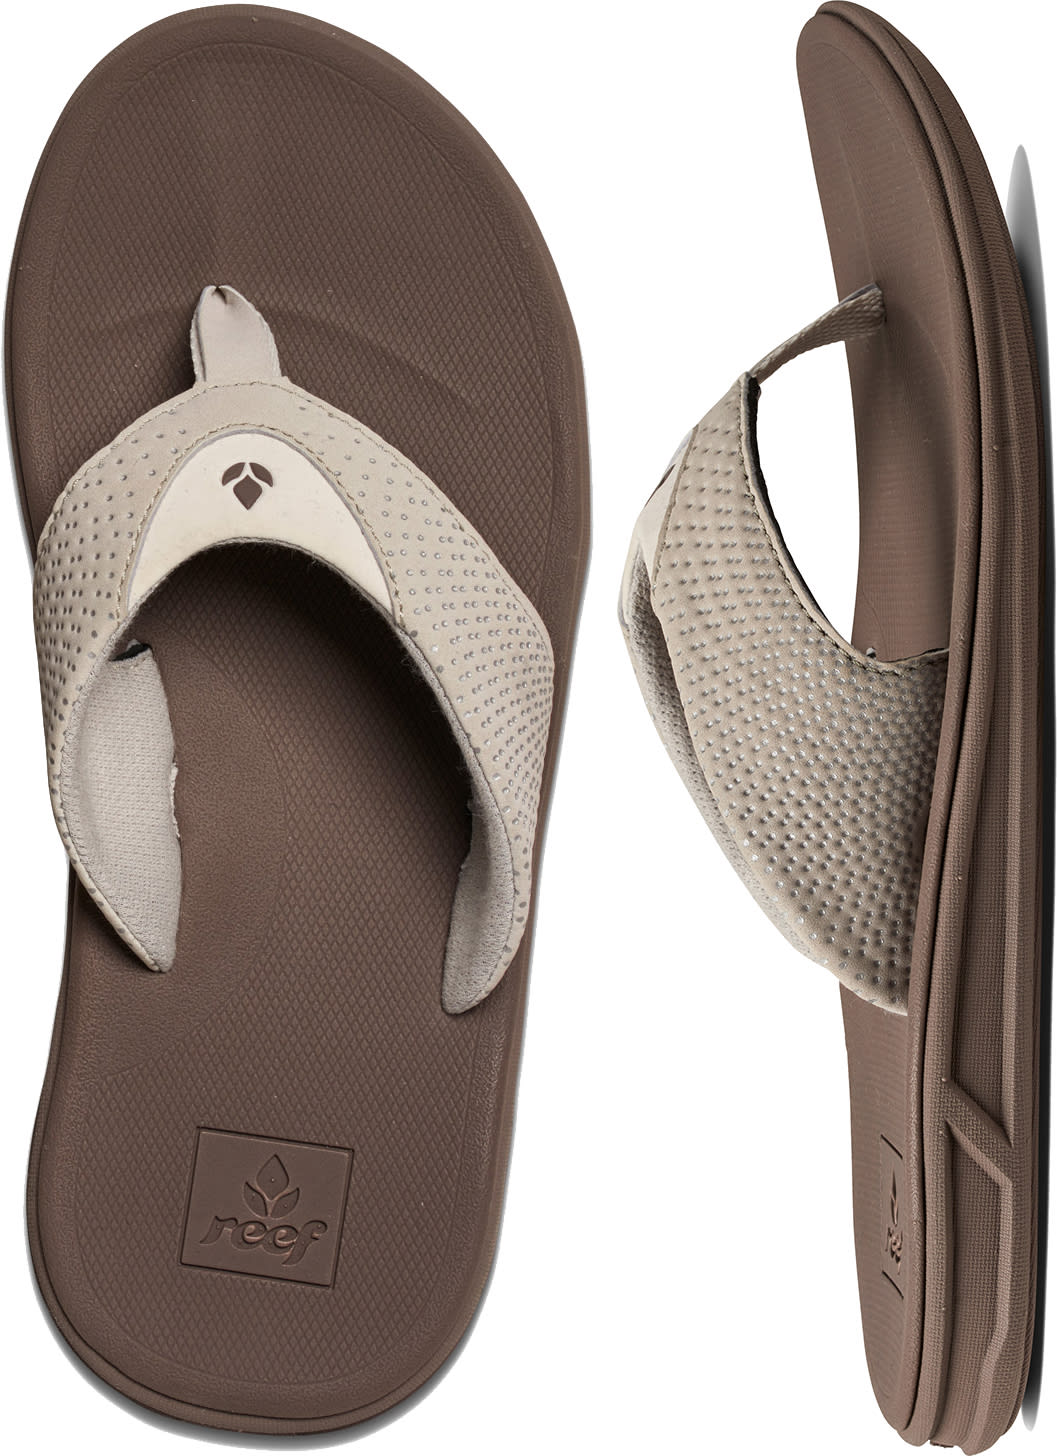 Reef Rover Sandals Womens